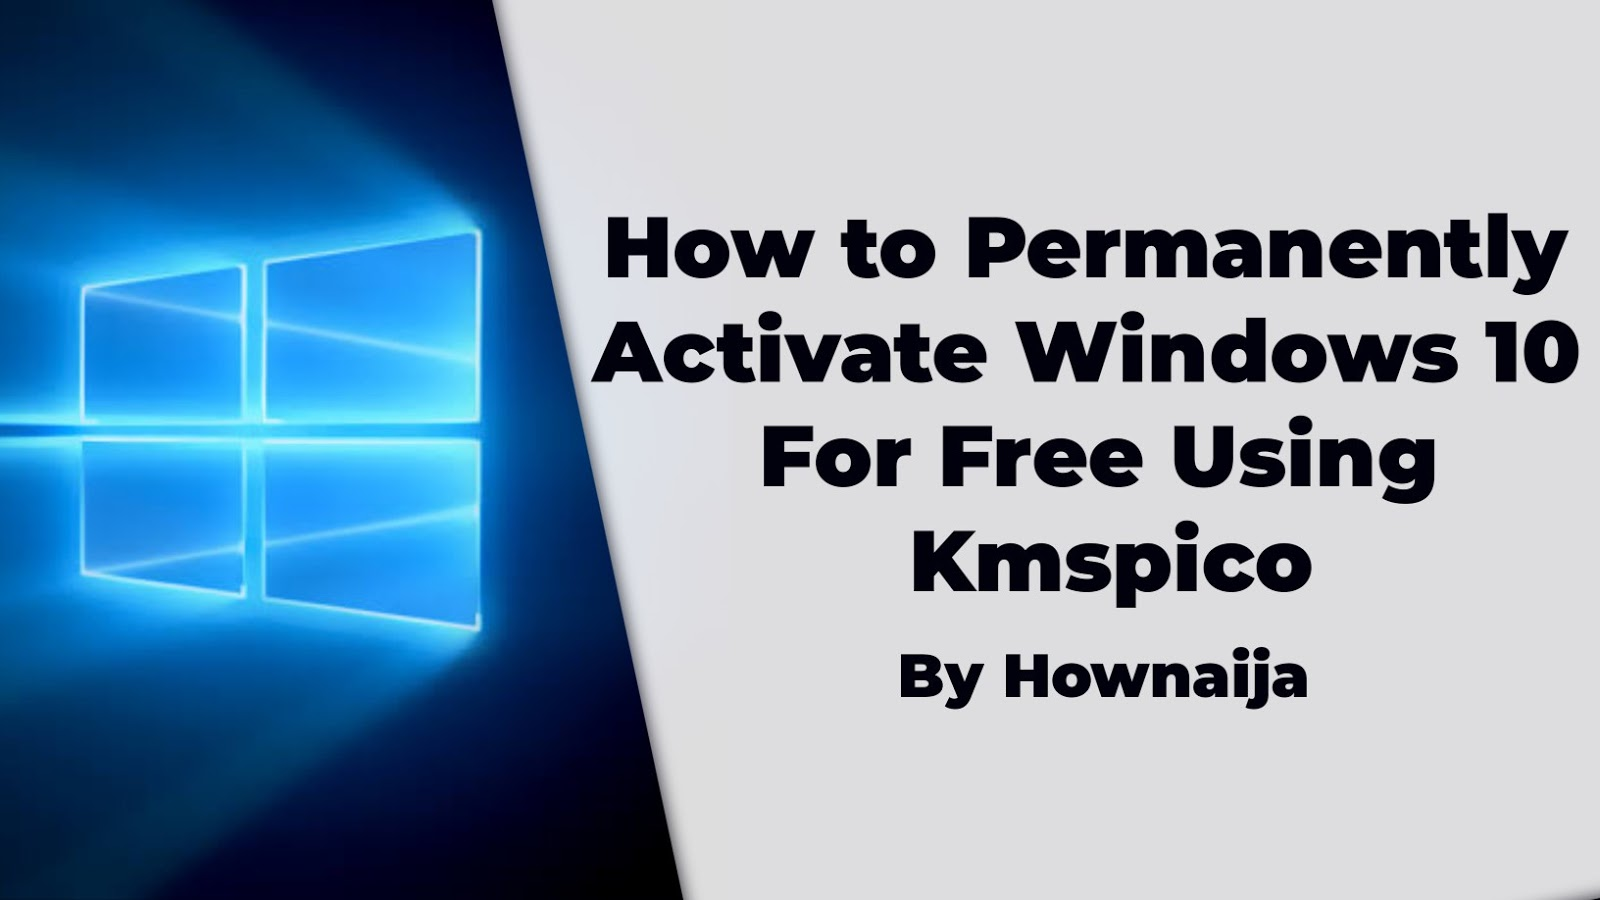 How to Permanently Activate Windows 10 For Free Using Kmspico